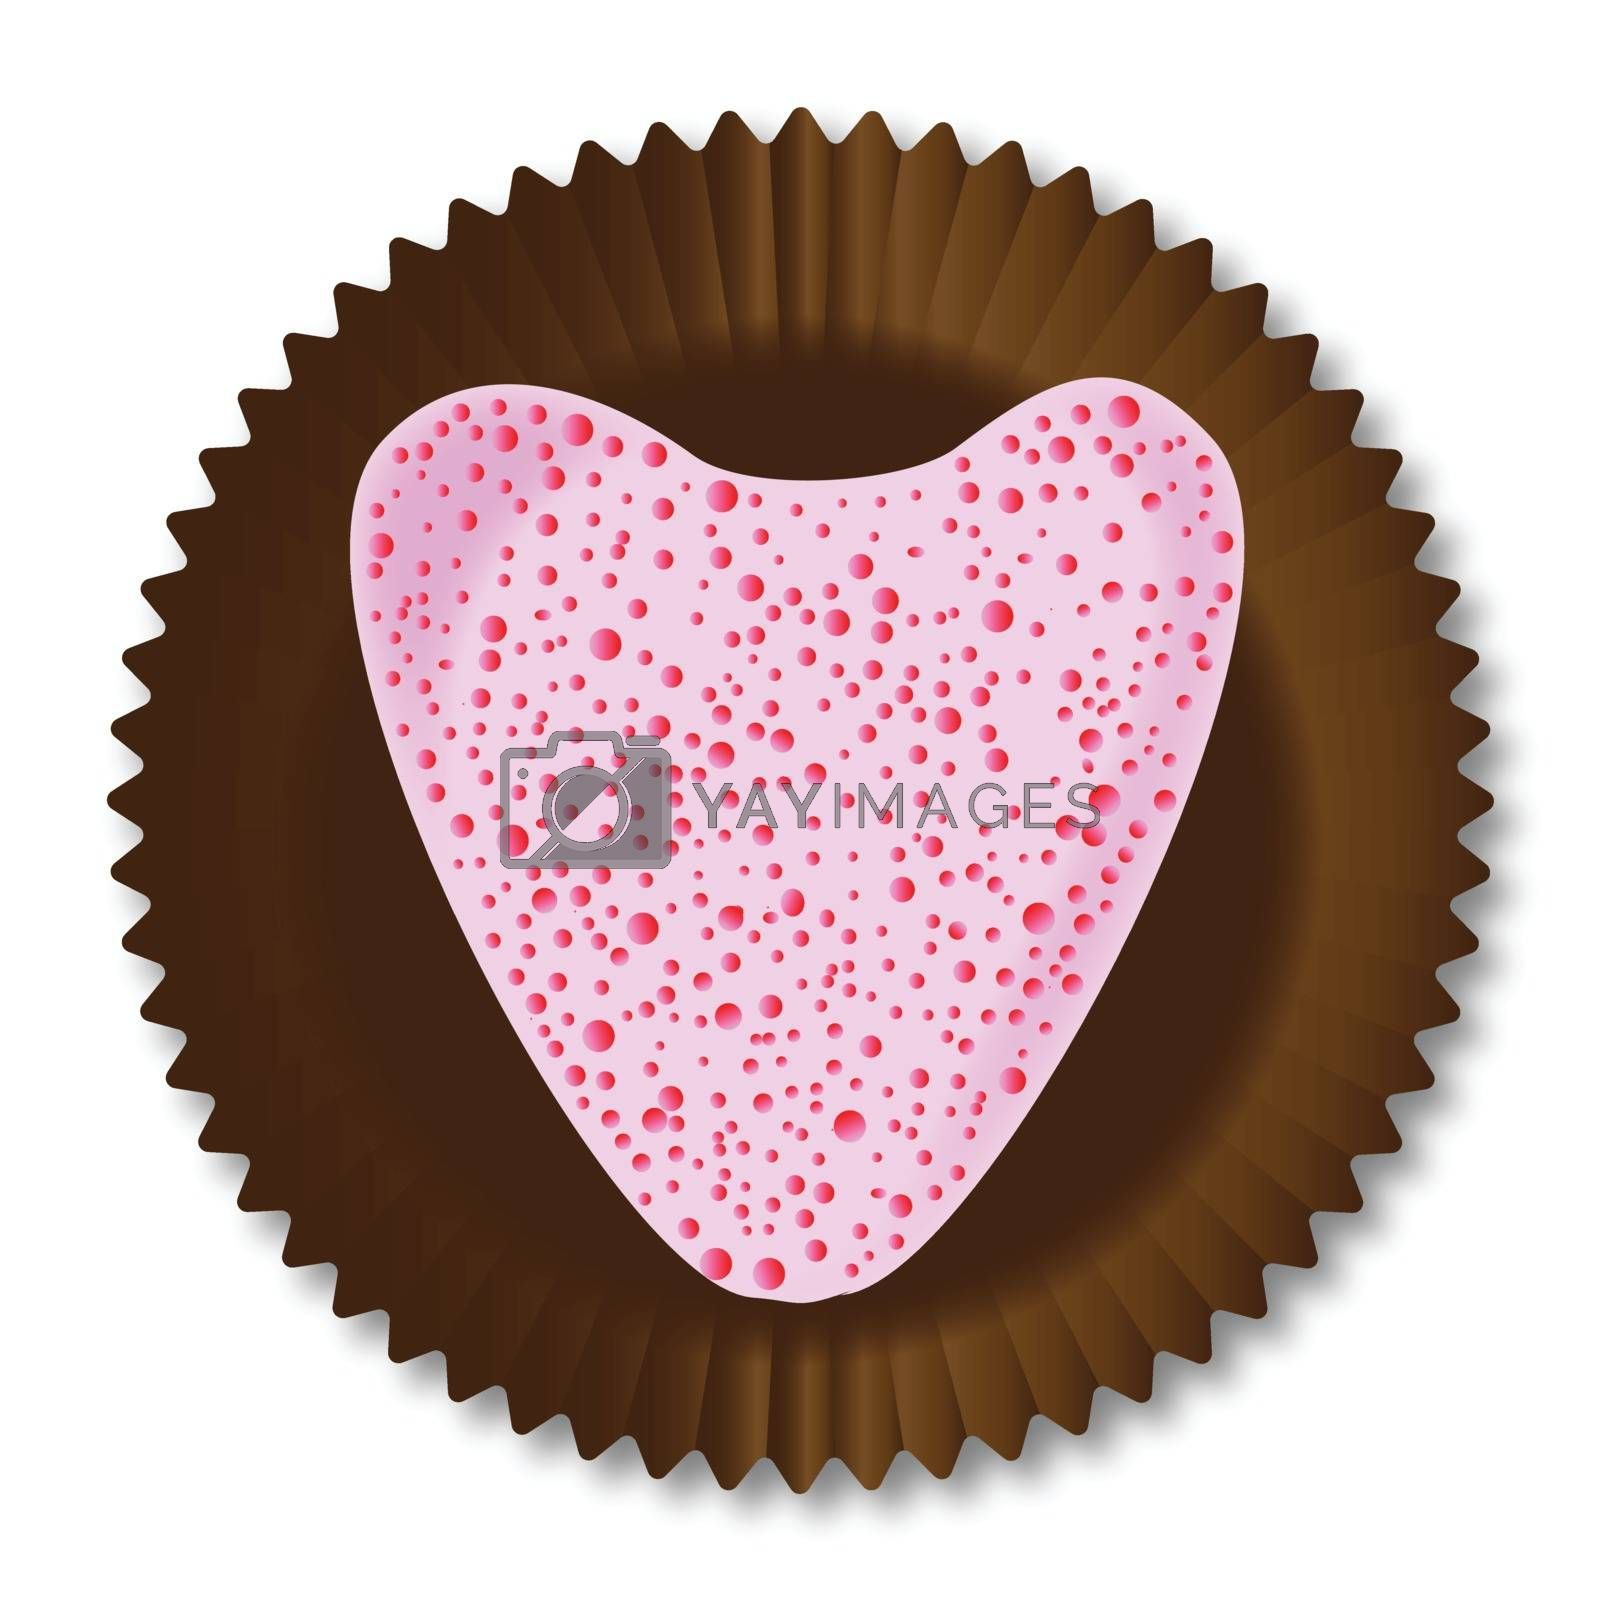 A typical strawberry flavour heart shaped chocolate from a chocolate box selextion over a white background